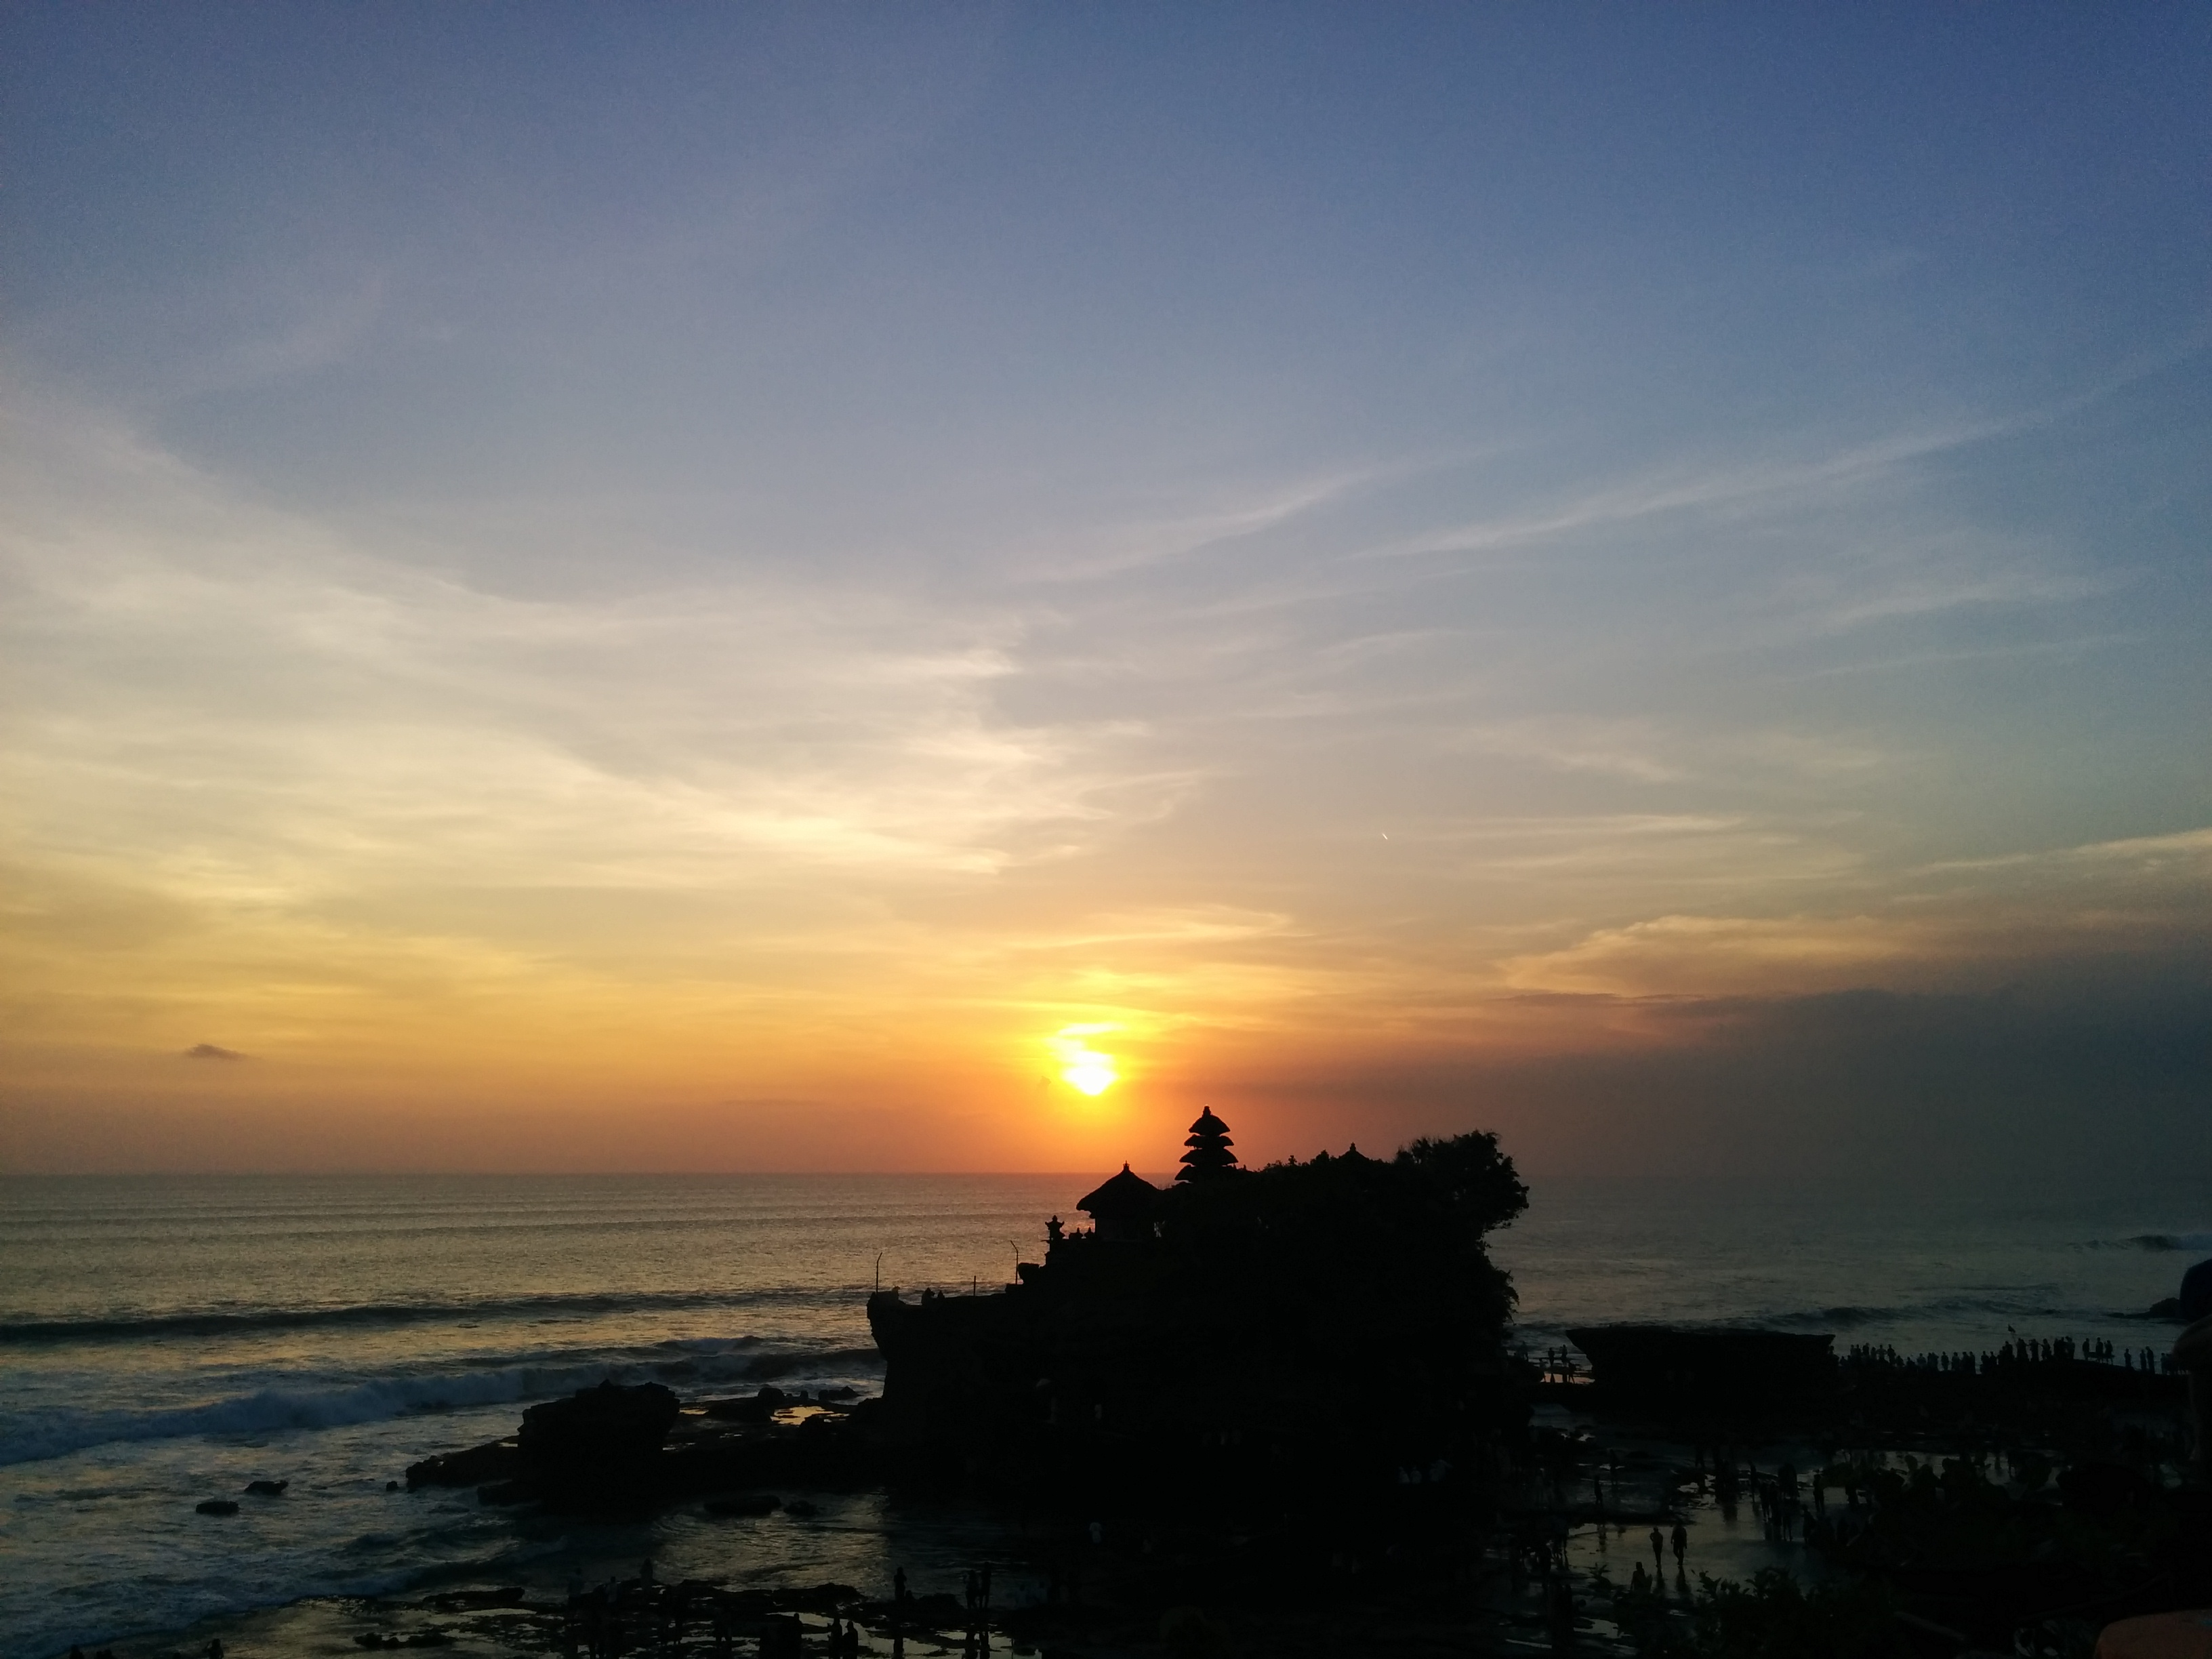 Tanah Lot is really beautifull!